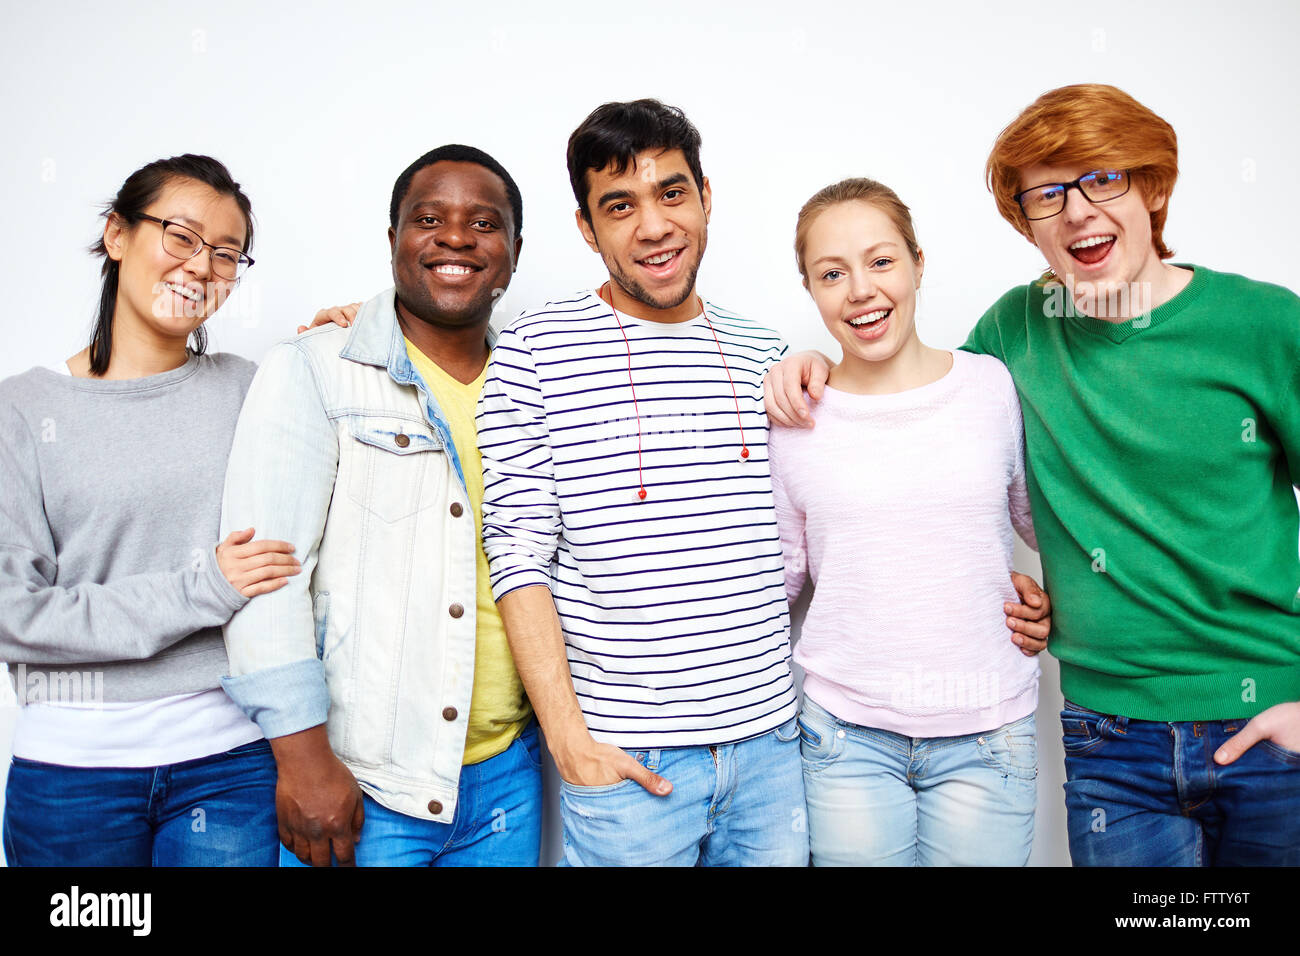 Cheerful students - Stock Image